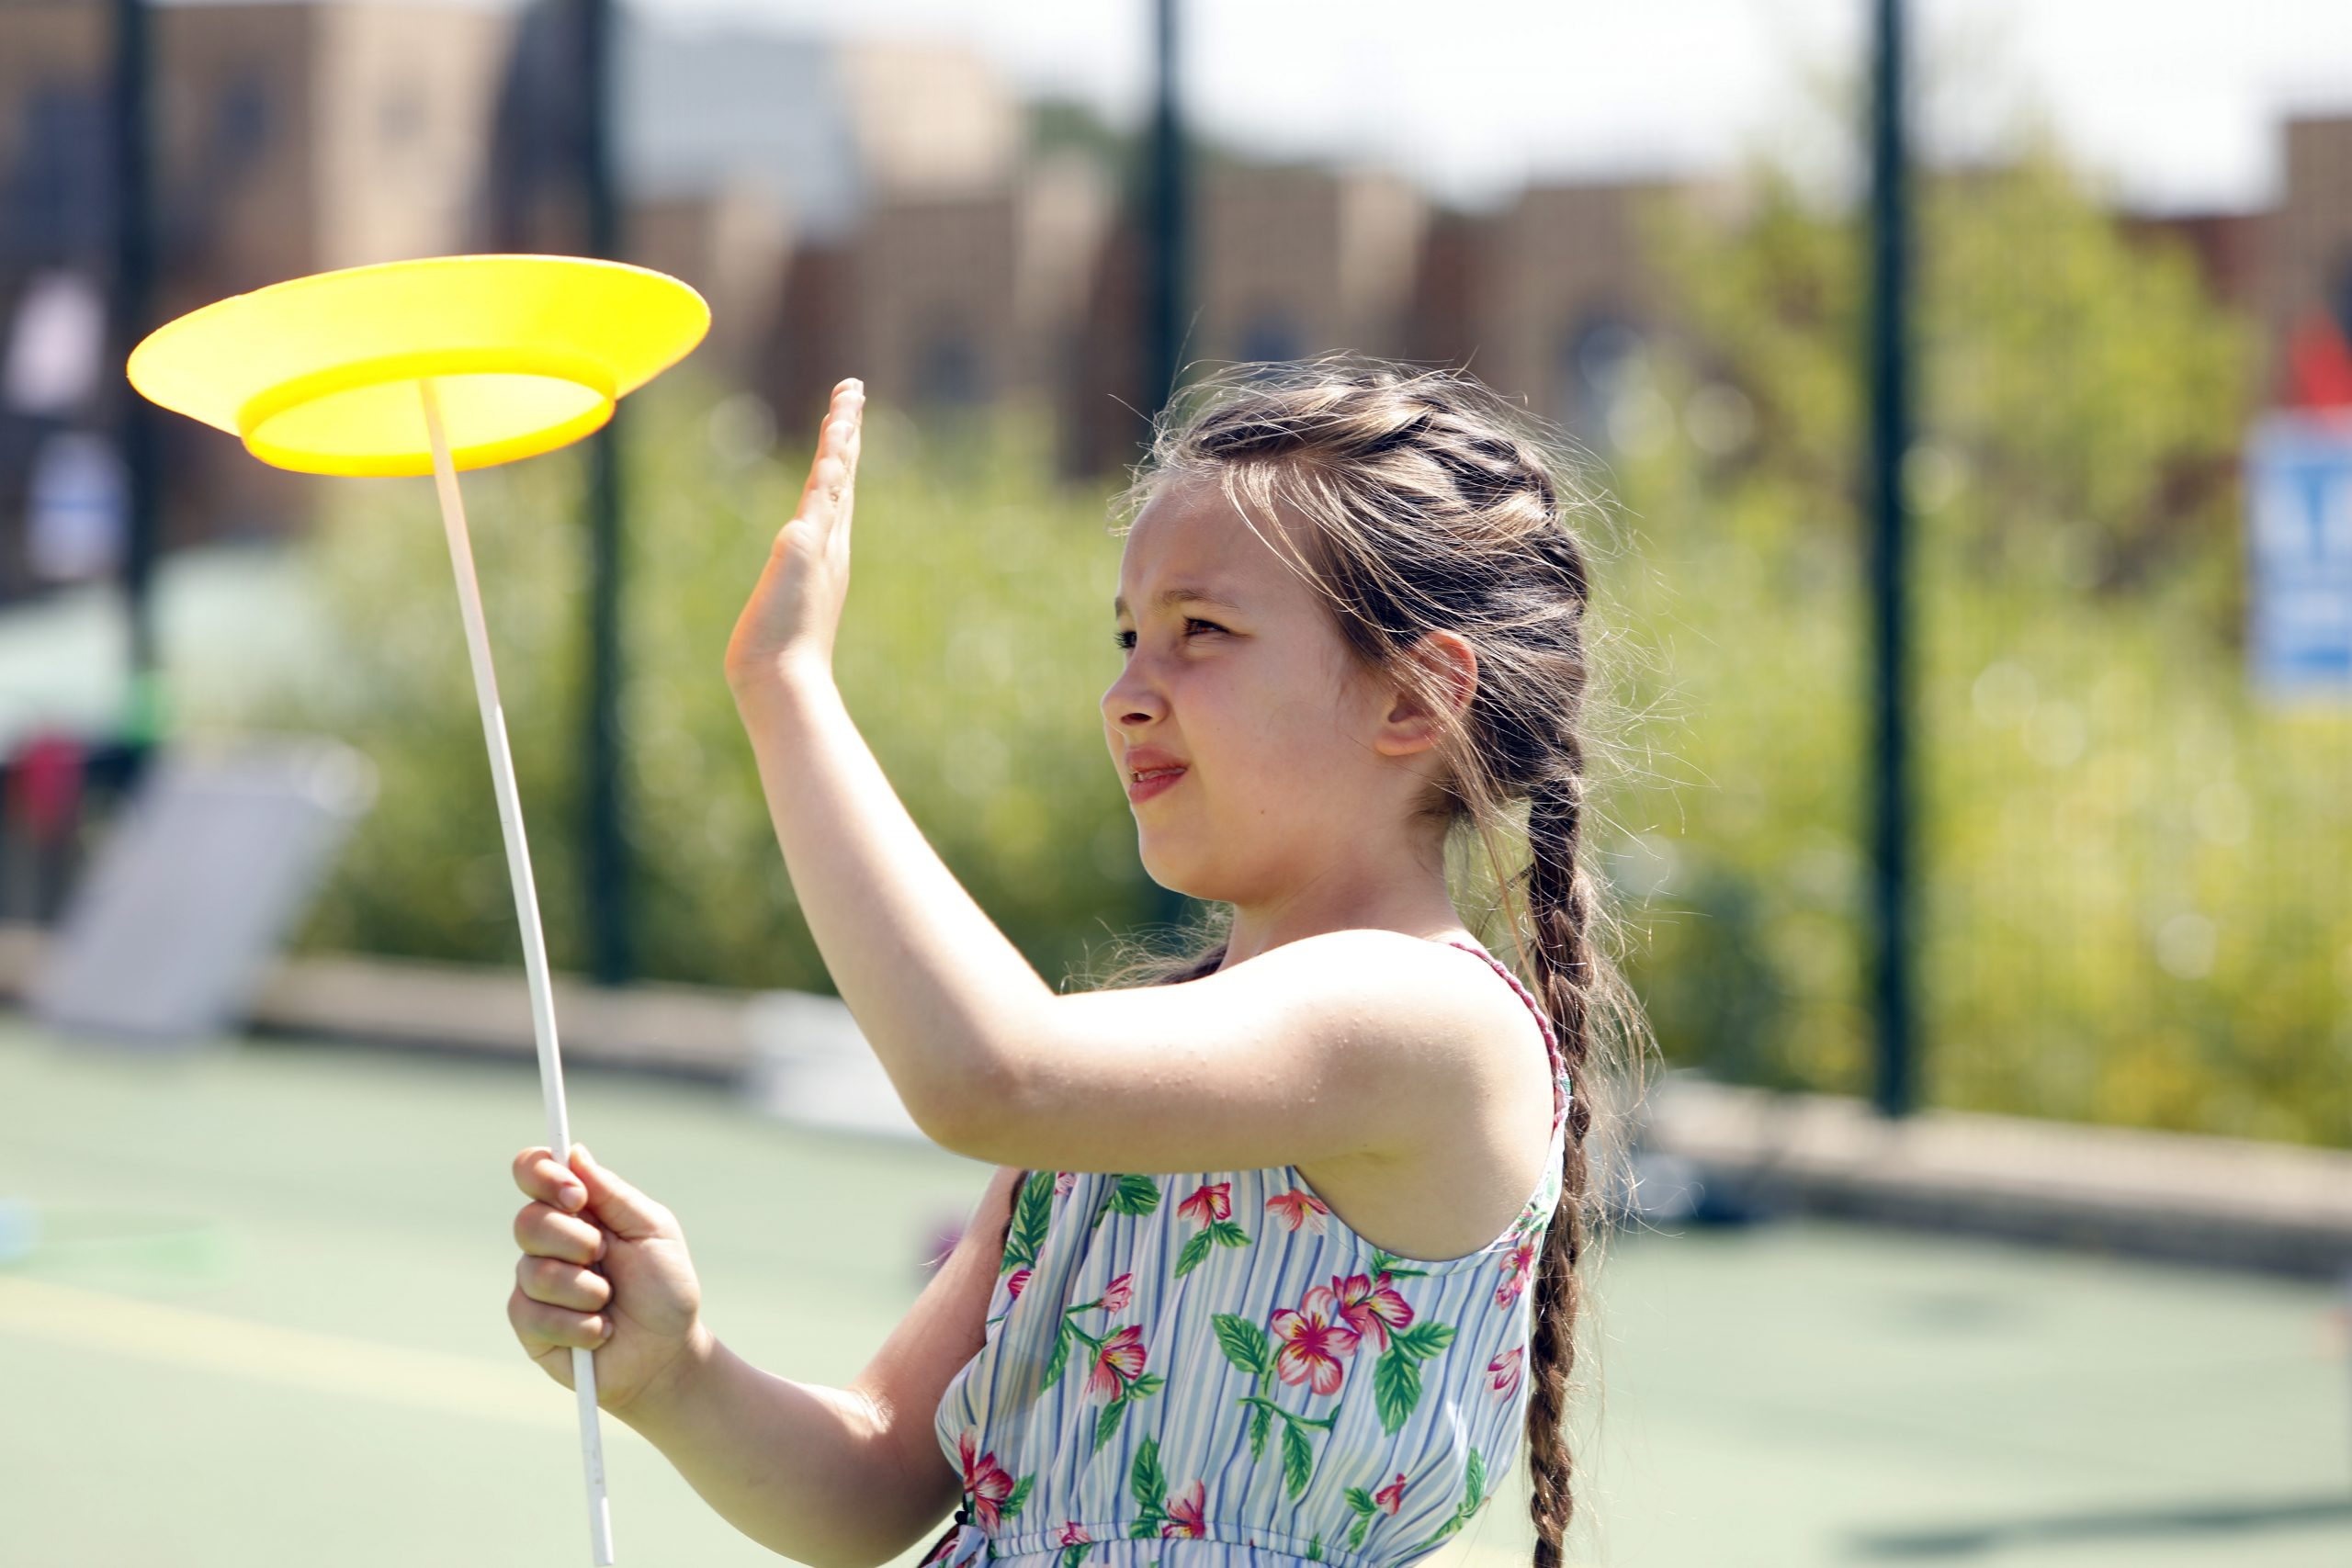 A girl spins a plate